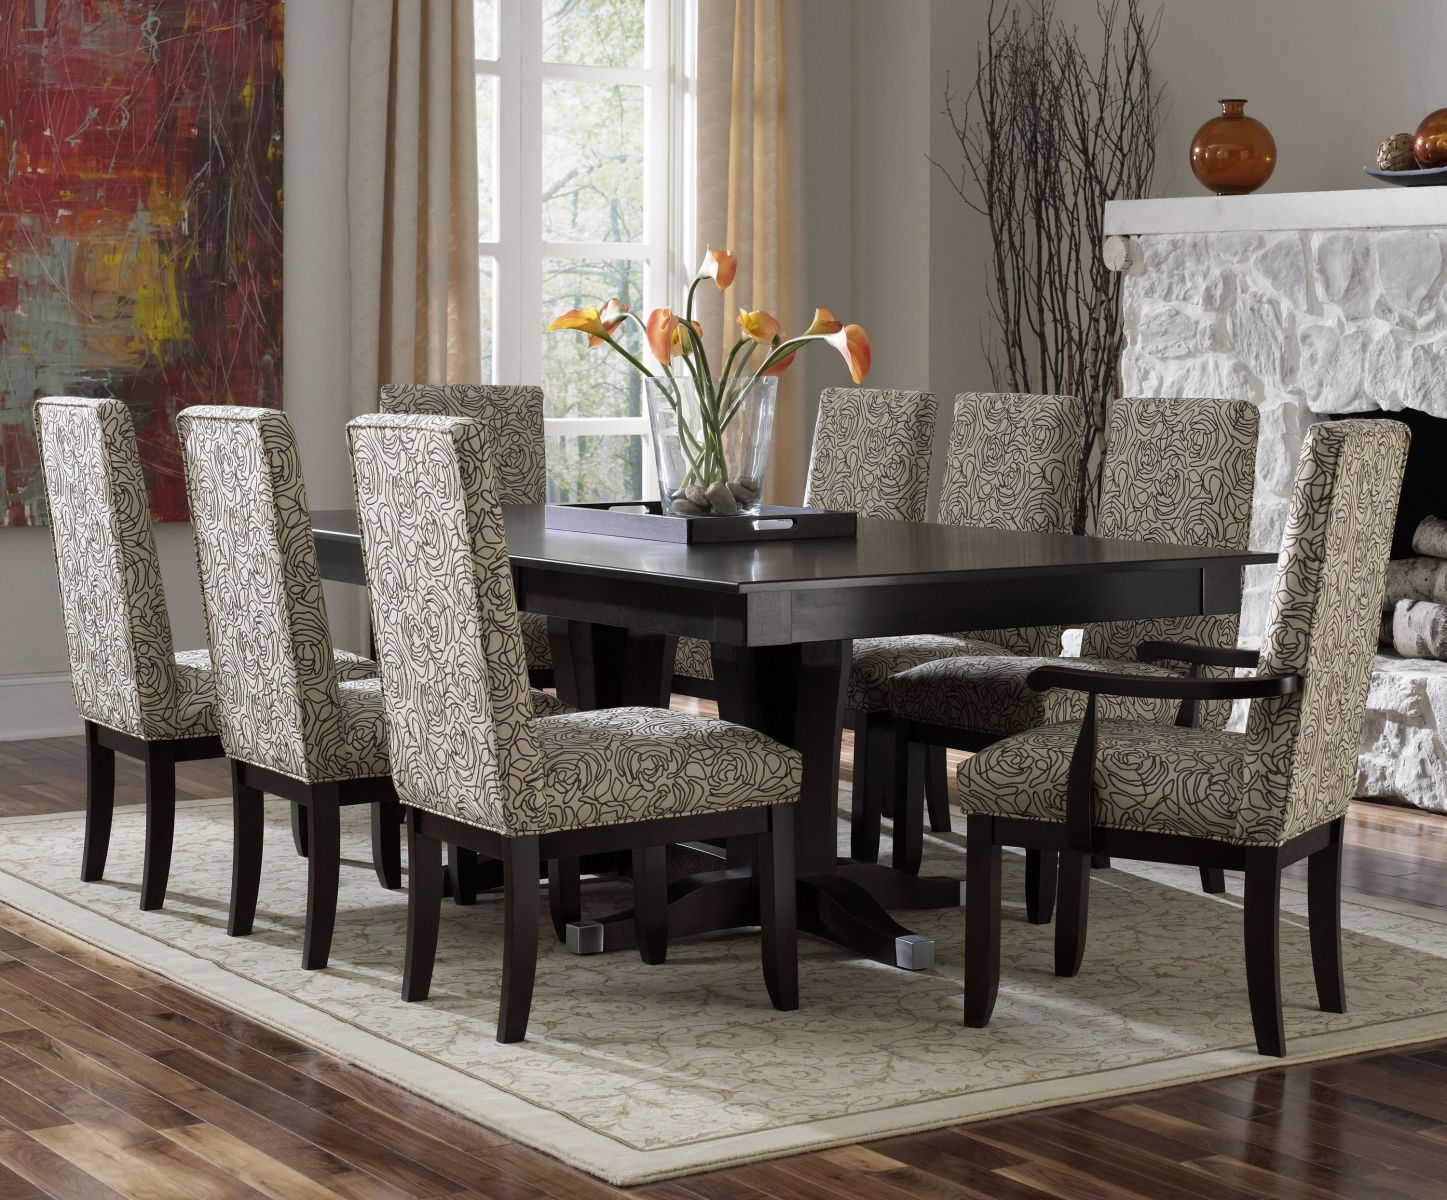 D cor for Formal Dining Room Designs. D cor for Formal Dining Room Designs   Contemporary dining room